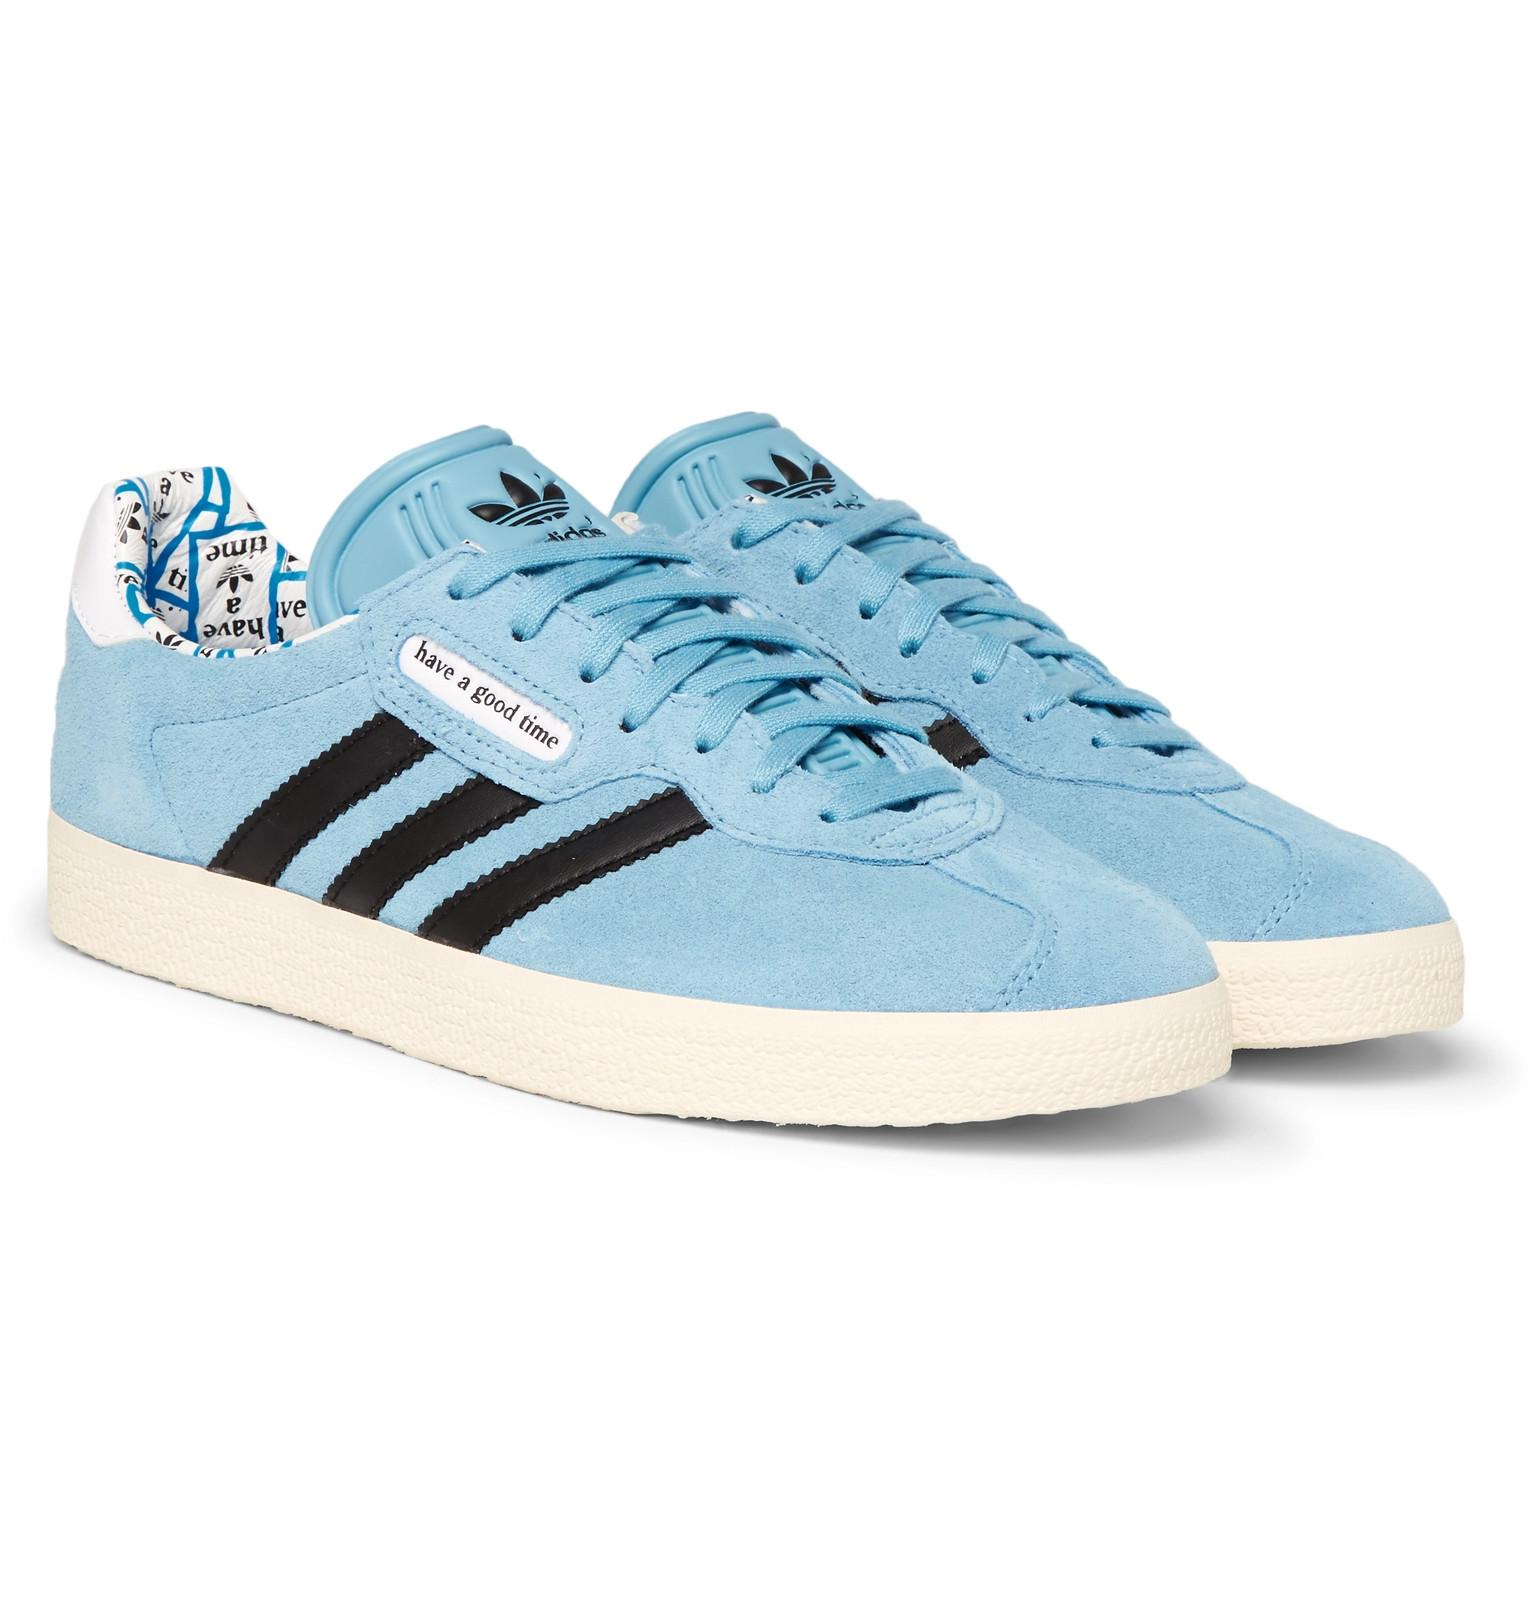 quality design f790d 4b490 adidas Originals. Mens Blue + Have A Good Time Gazelle Suede And Leather  Sneakers